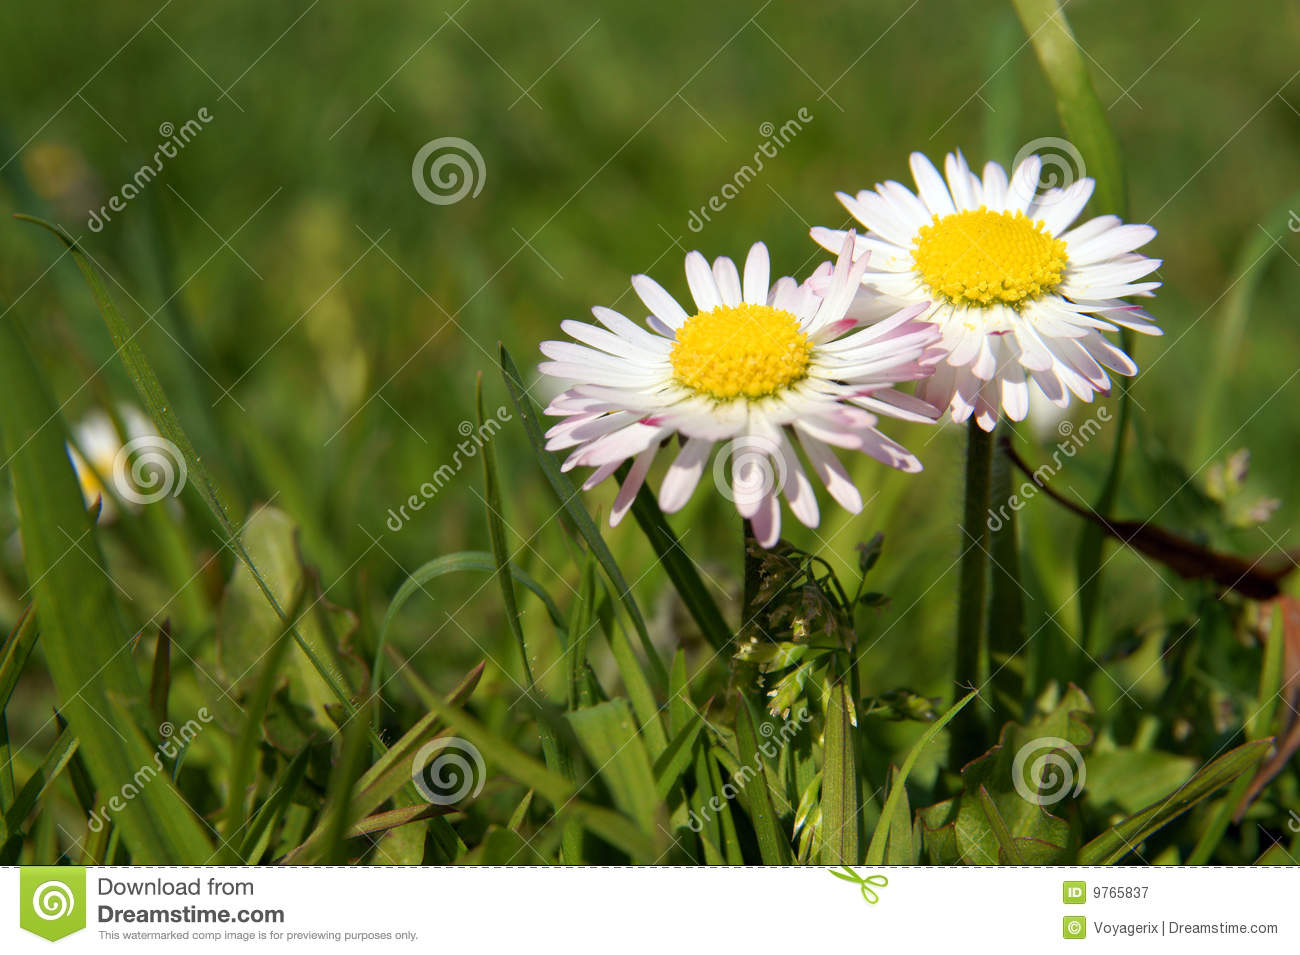 Close Up Of Daisy Flower Growing In Grass Stock Image Image Of